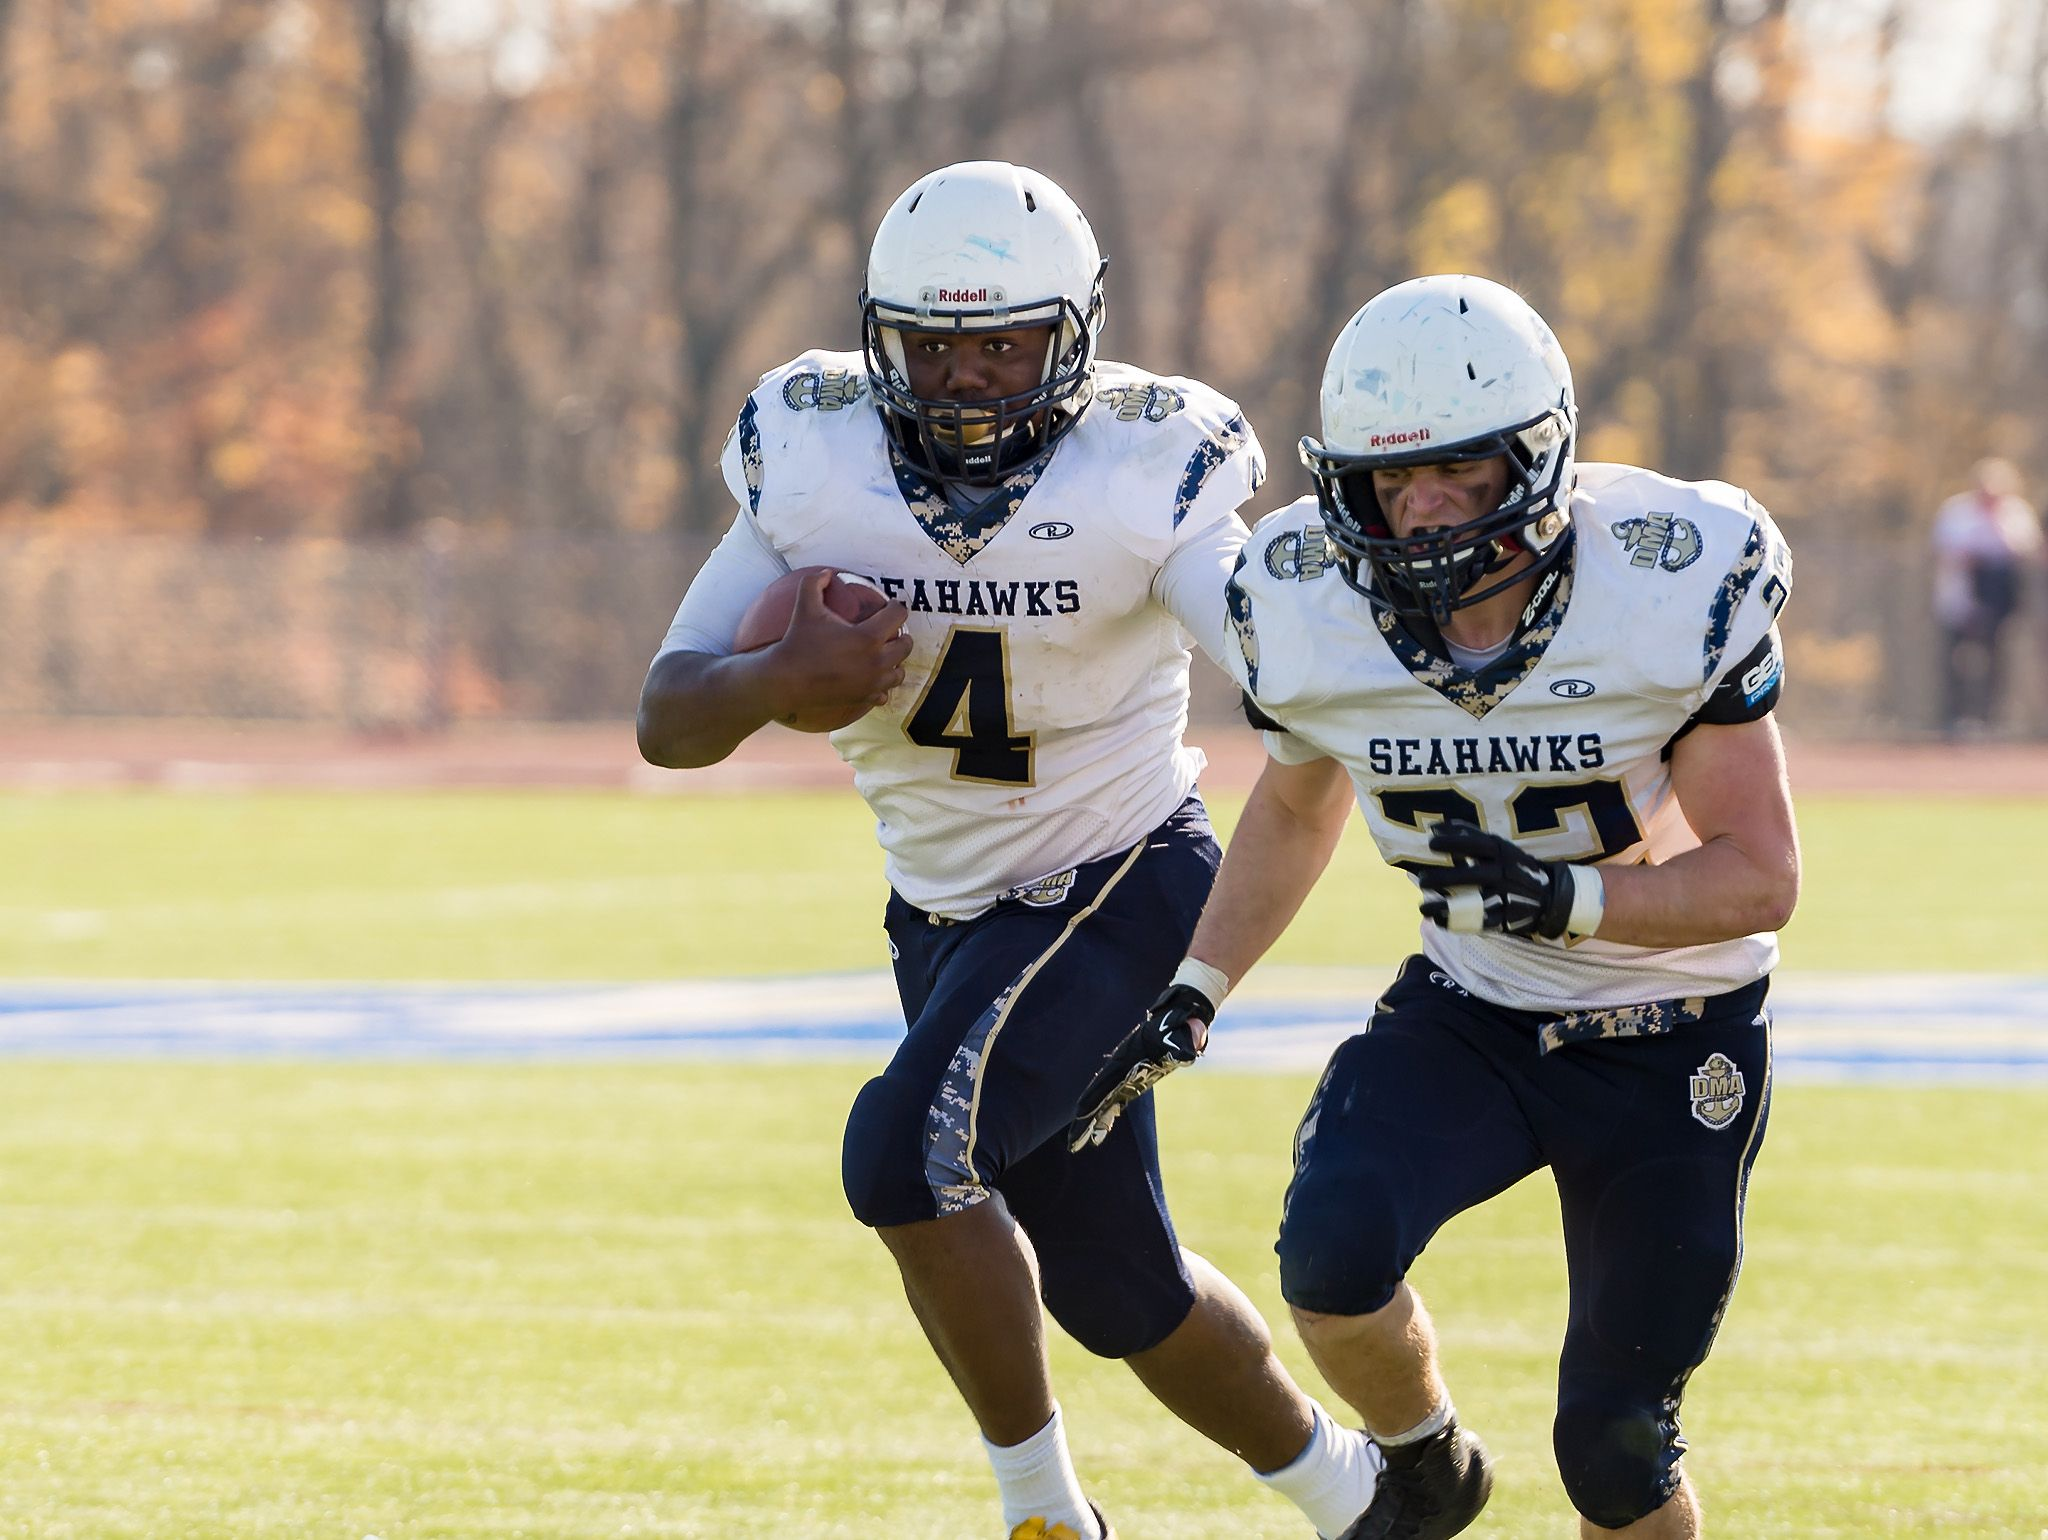 Todd Turner of DMA carries the ball for a touchdown with some blocking help from Brennan Hazewski as DMA plays at St. Georges in the opening round of DIAA Division II playoffs.